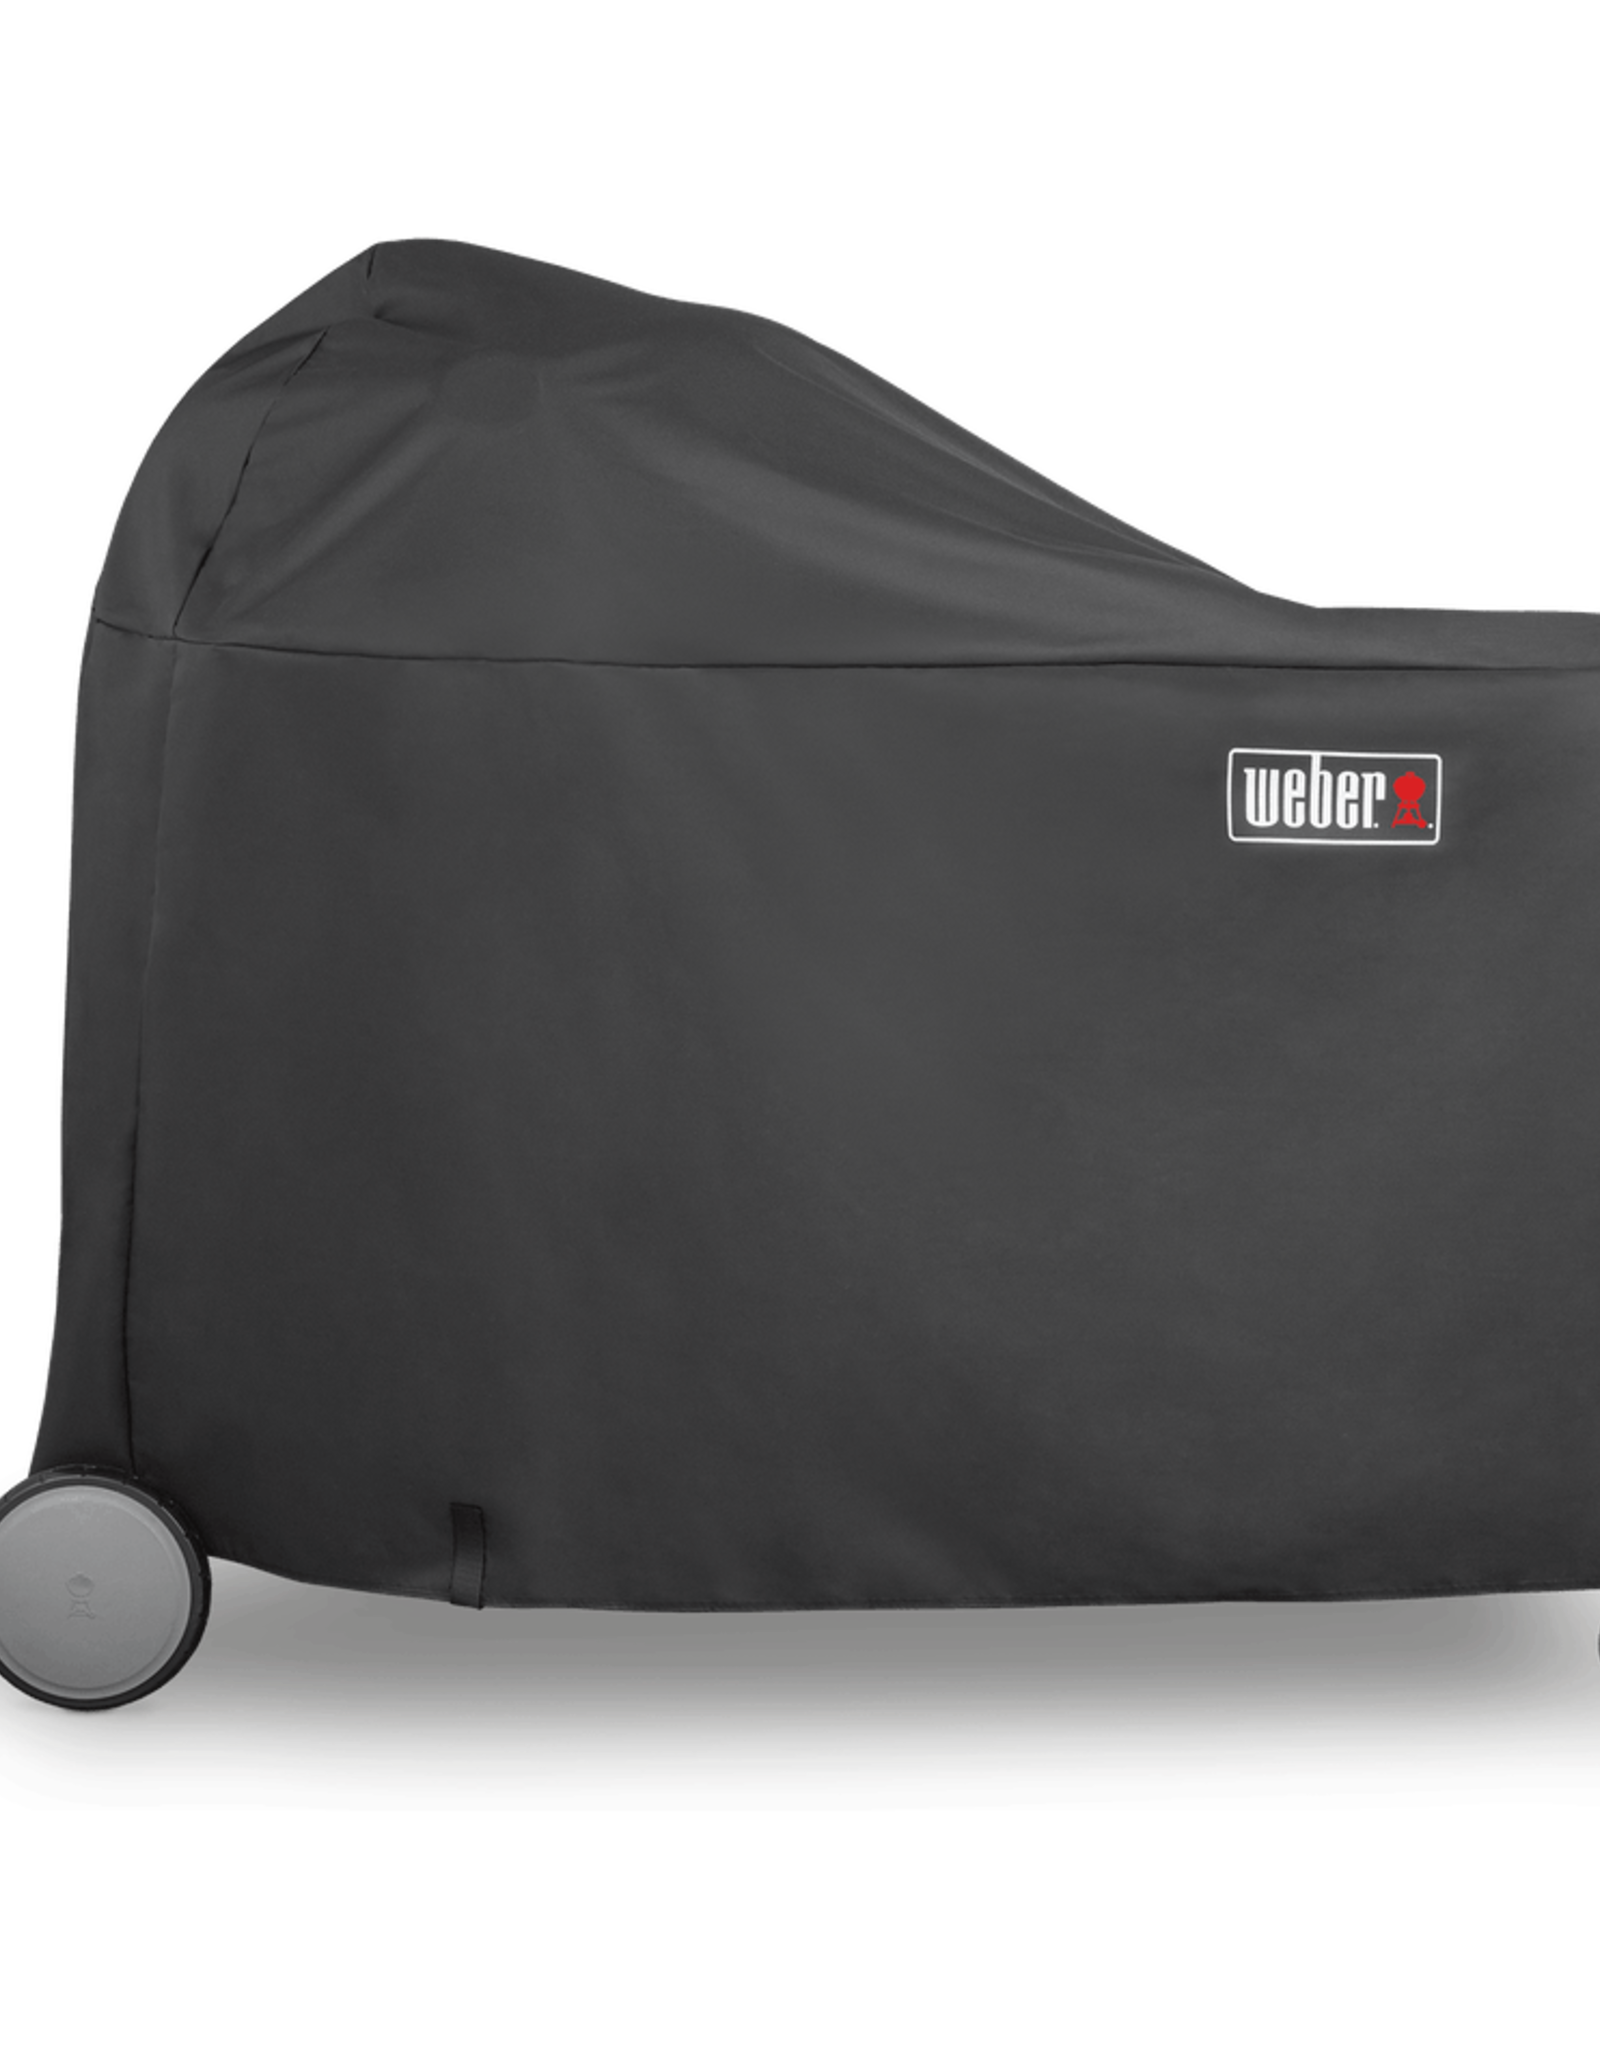 Weber Summit® Charcoal Grilling Center Cover